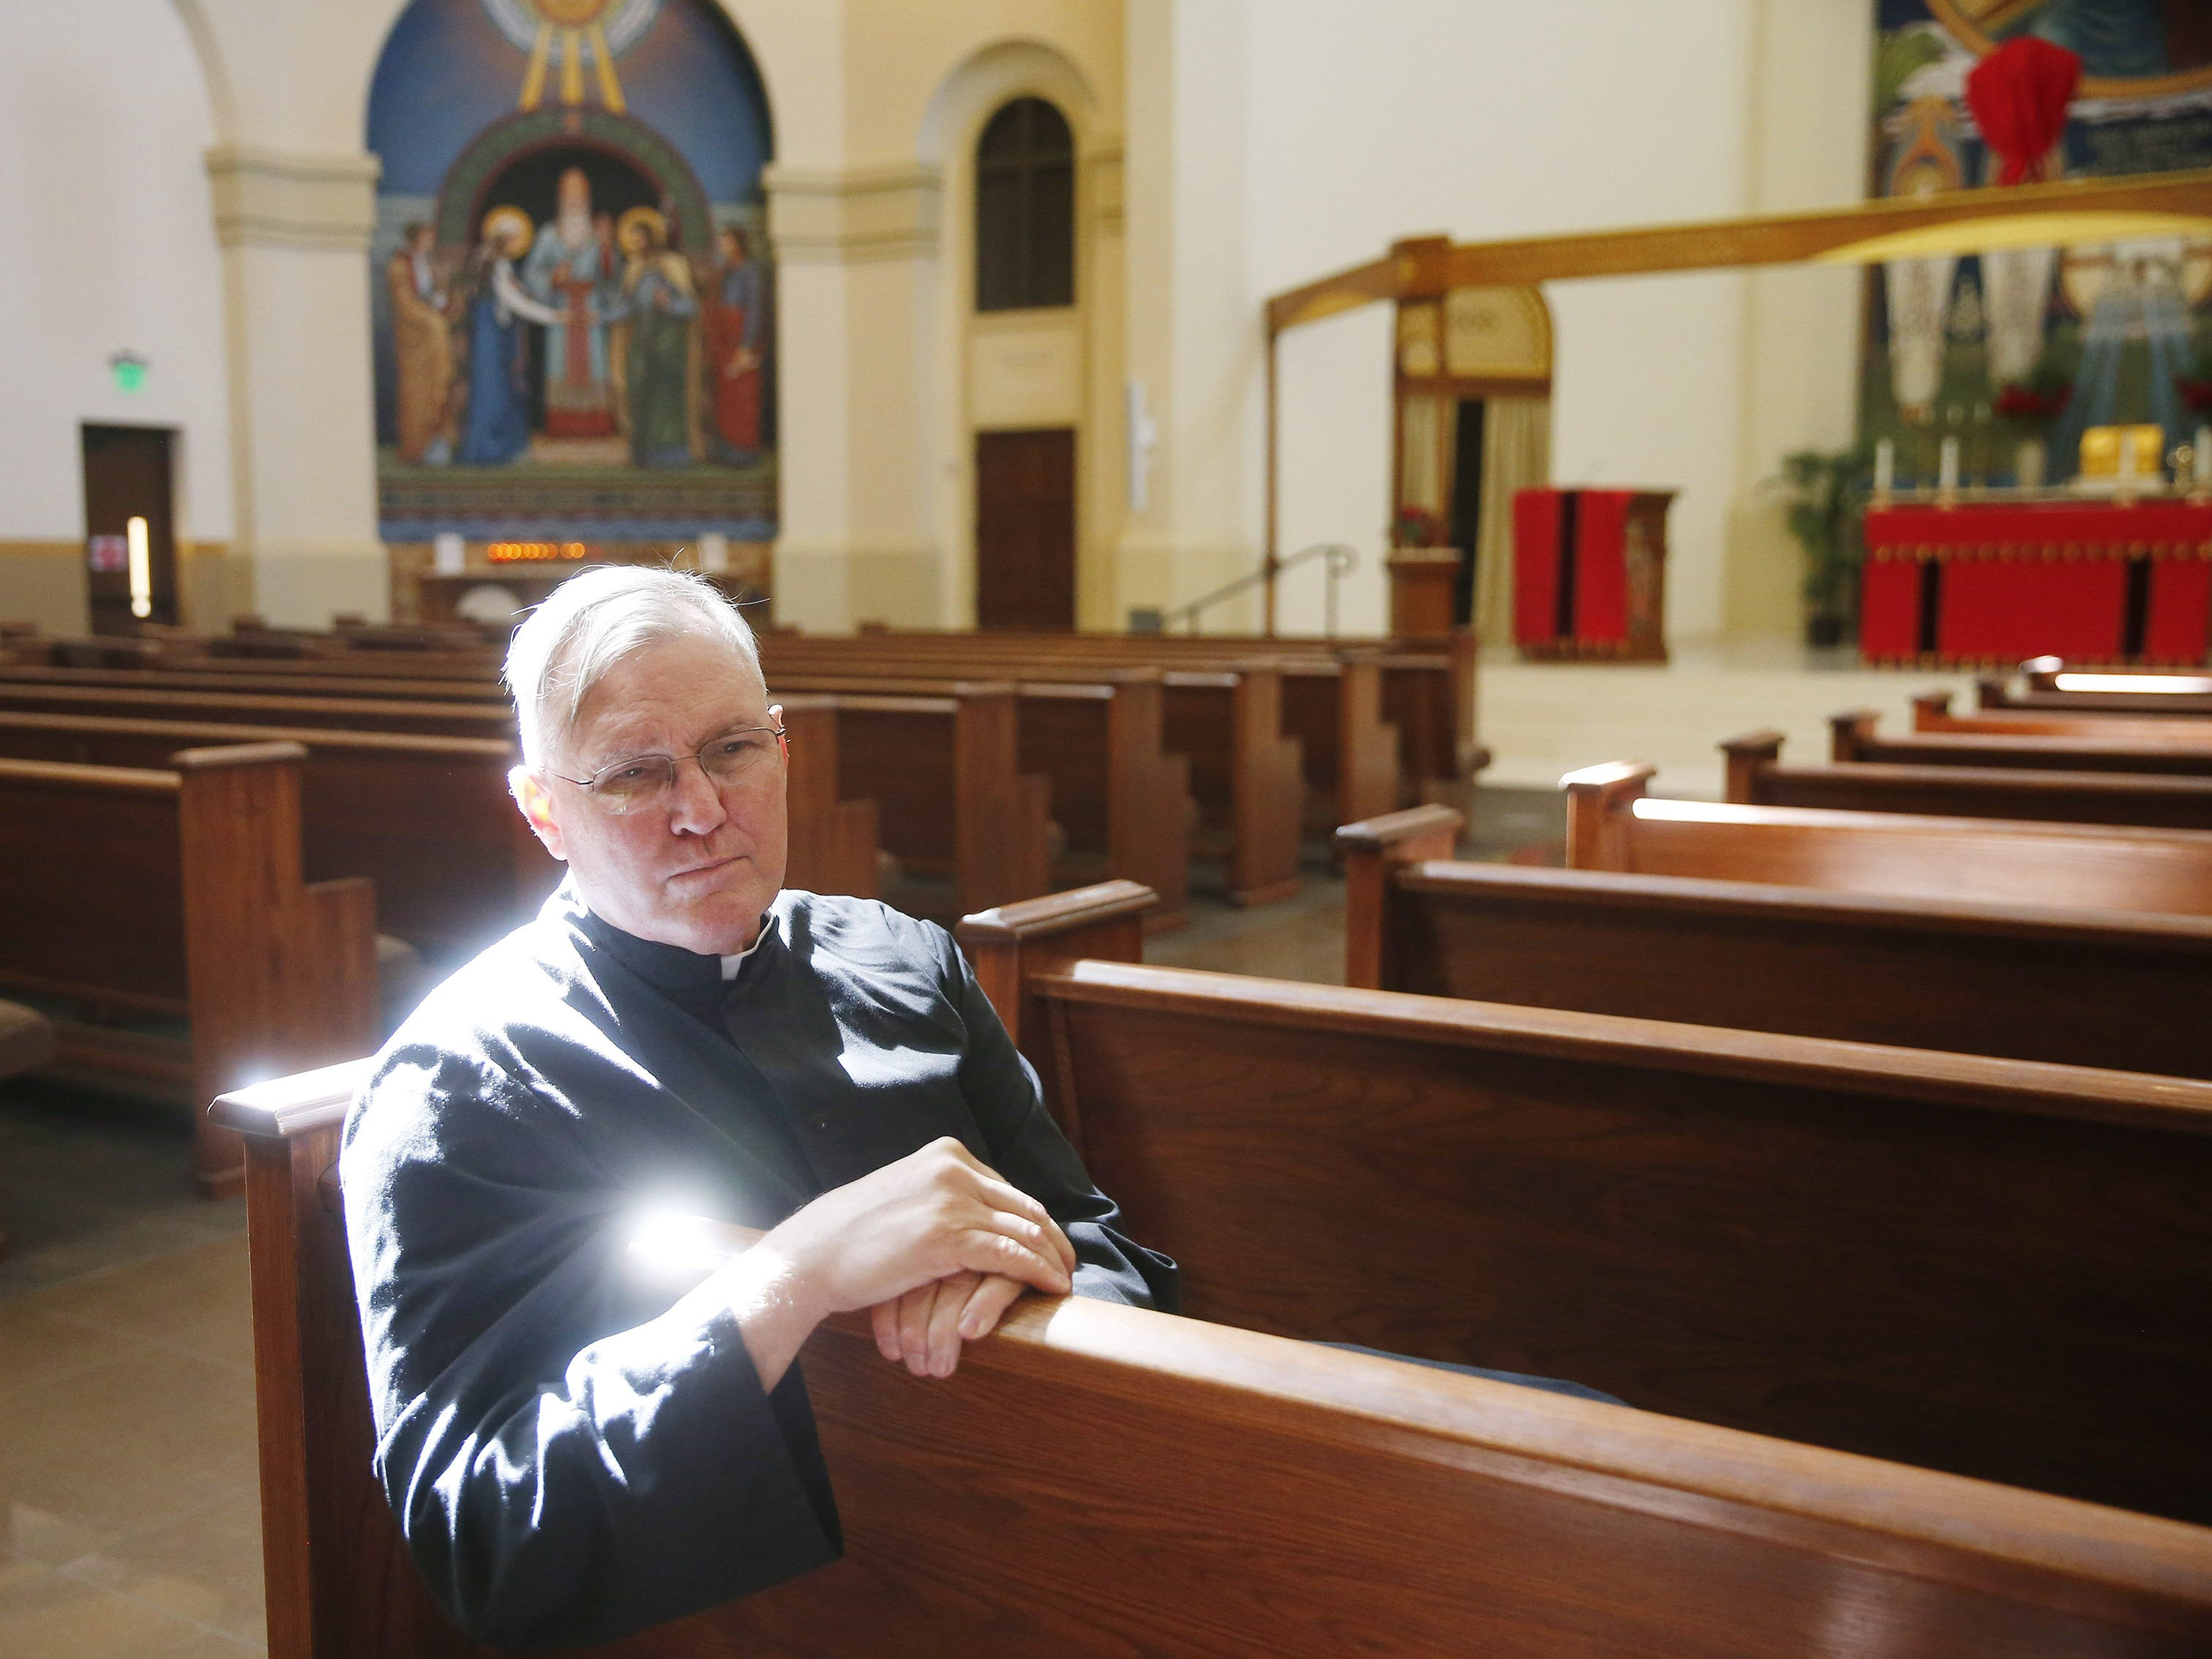 The Rev. Rob Clements sits inside the ASU Catholic Newman Center in Tempe, Ariz. April 14, 2019. He has not seen a trend in his congregation leaving the church because of the sex scandal.